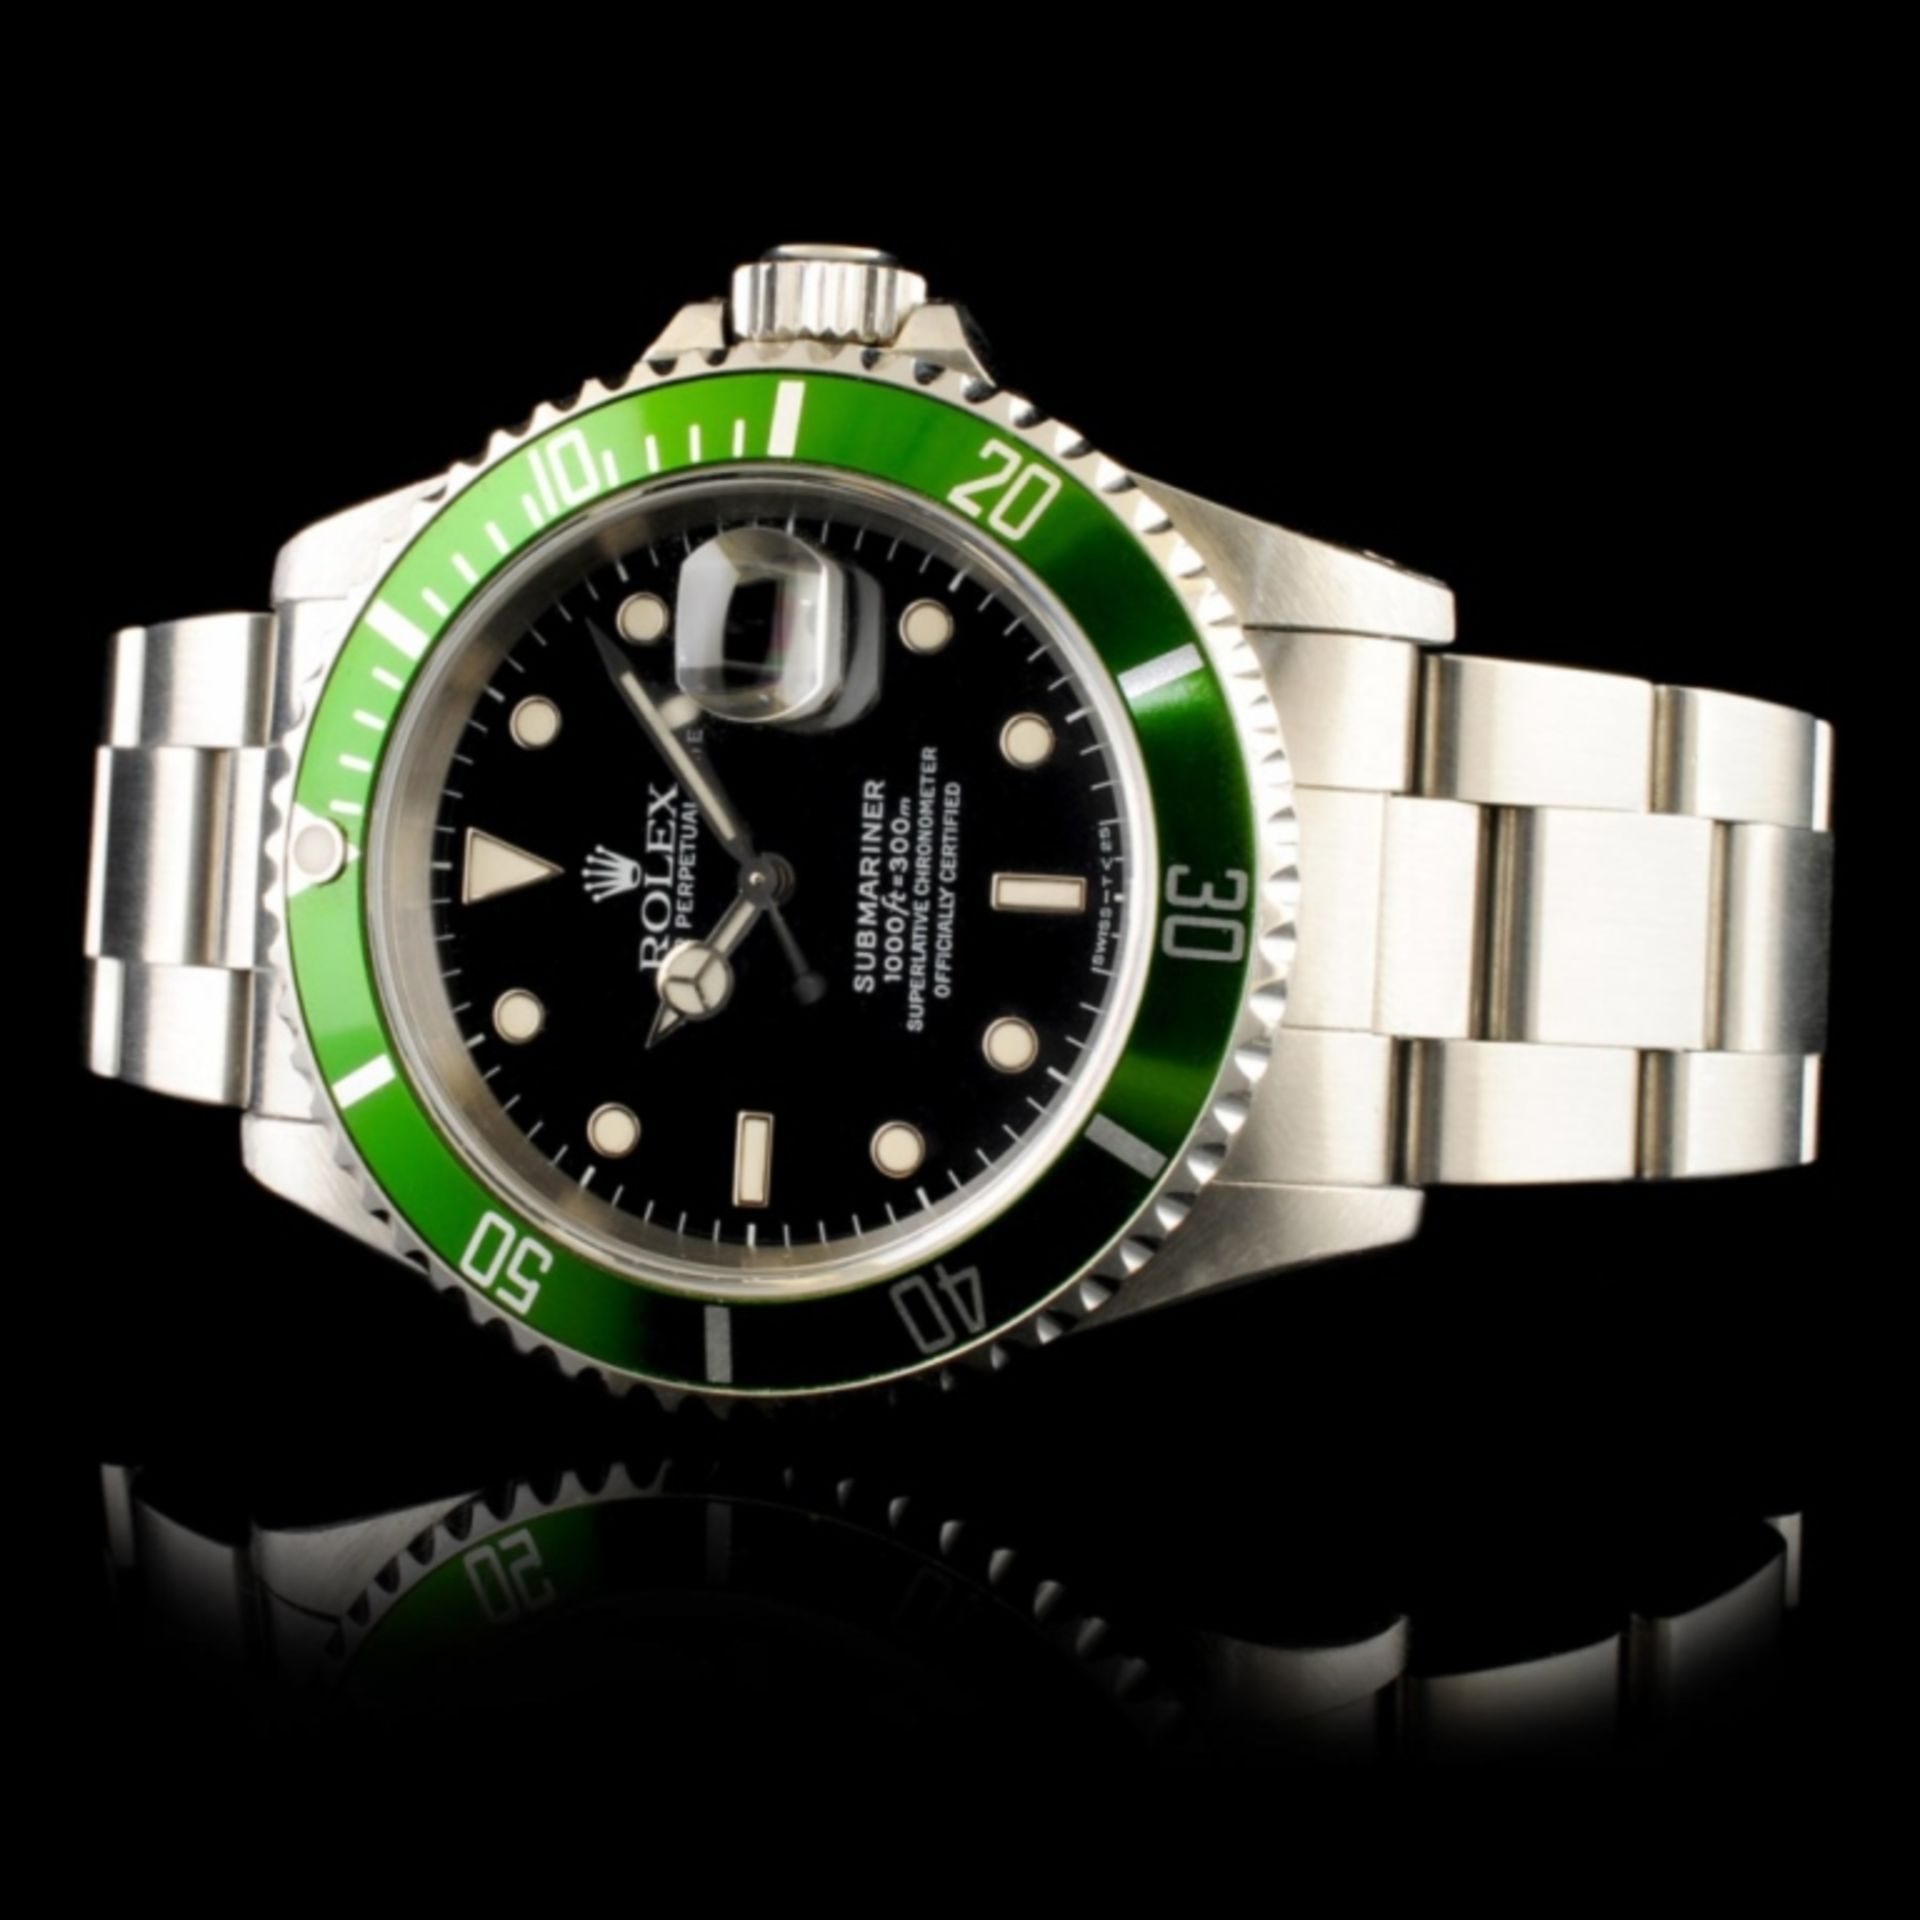 Rolex Submariner Stainless Steel 40MM Wristwatch - Image 3 of 5